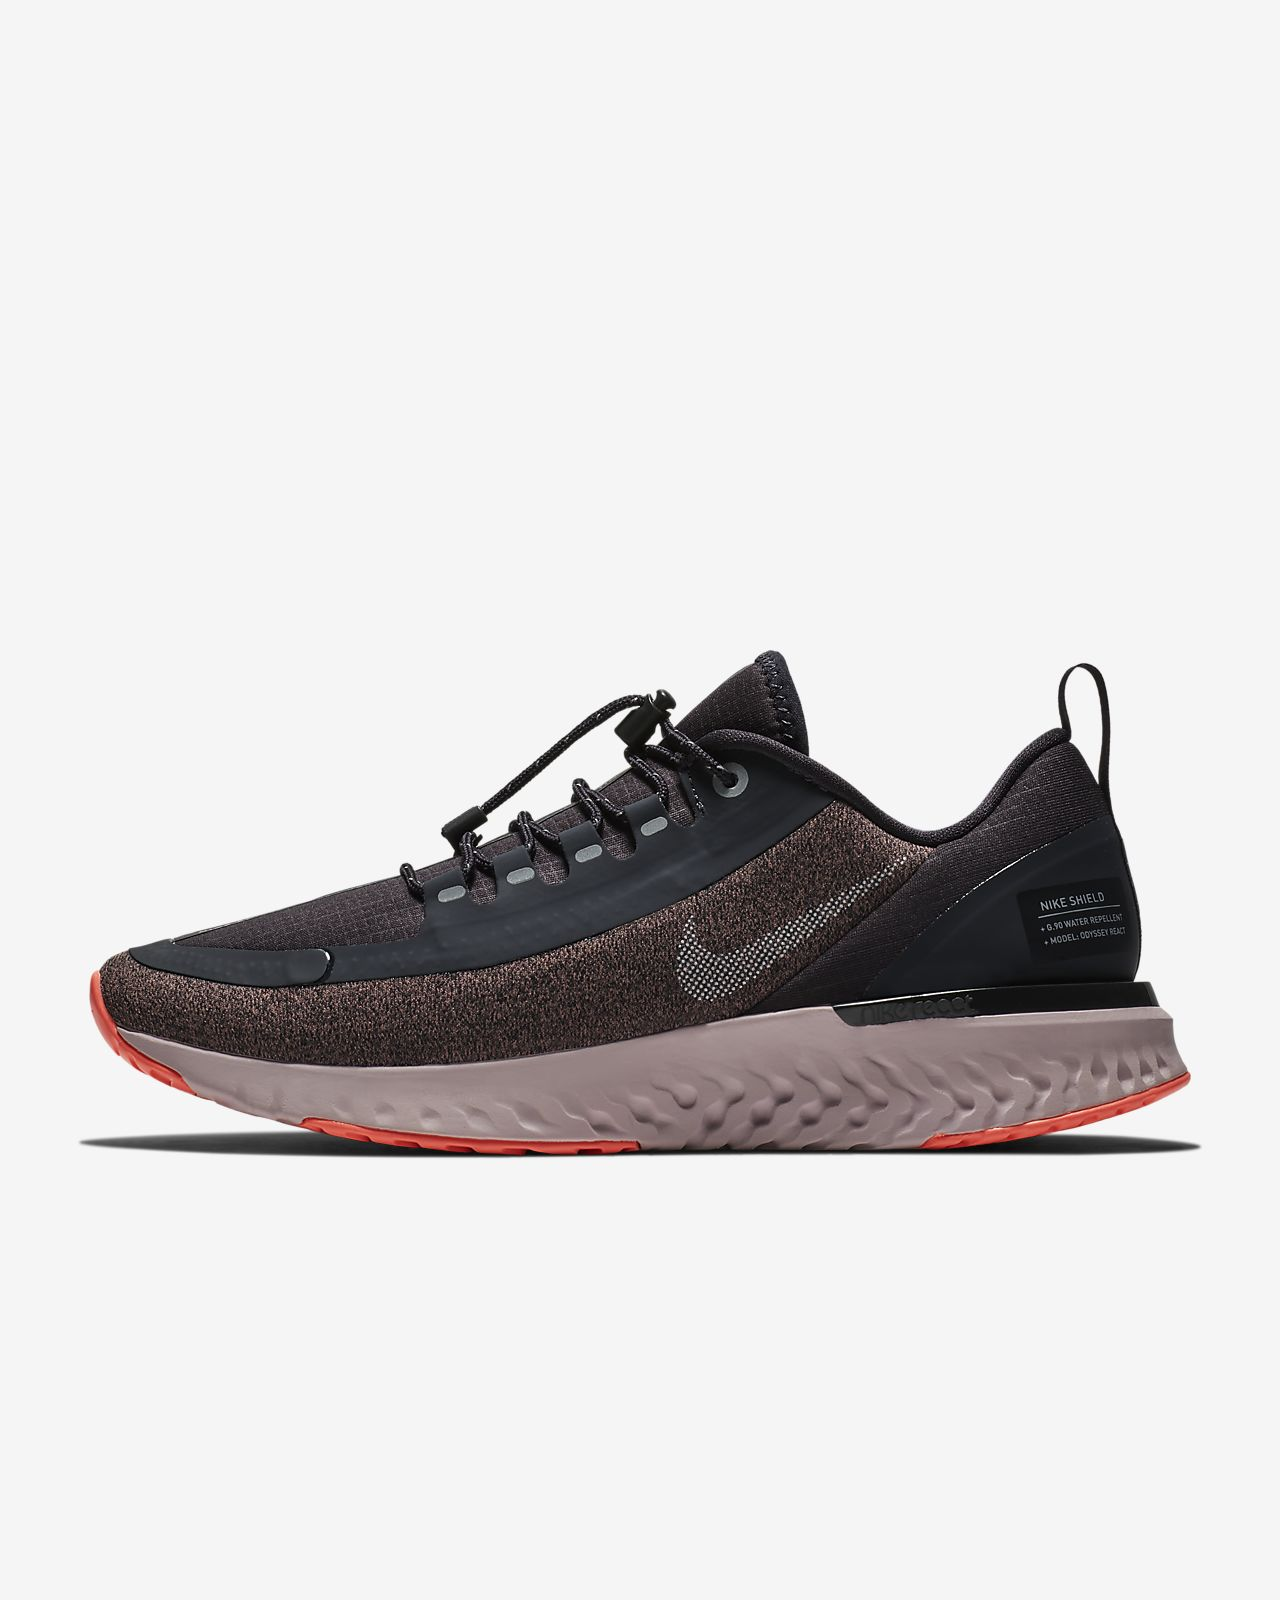 3af0fd1a650 Chaussure de running Nike Odyssey React Shield Water-Repellent pour Femme